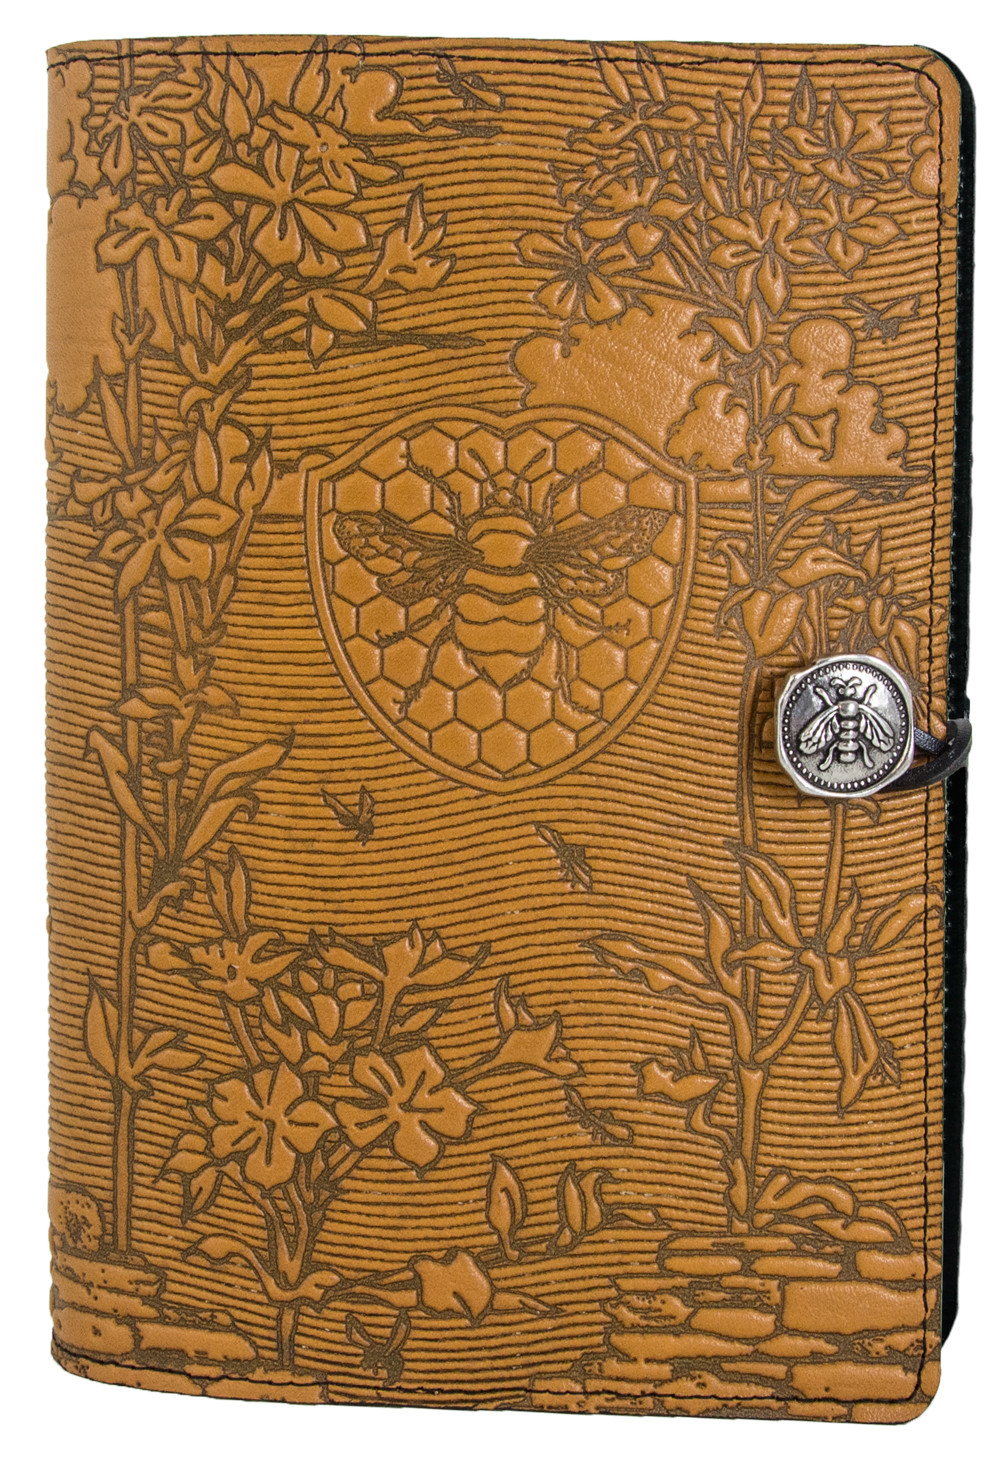 Large-Leather-Journal-Bee-Marigold-c-2_8109f36b-c64f-4657-8a91-eee87cd6f736.jpg